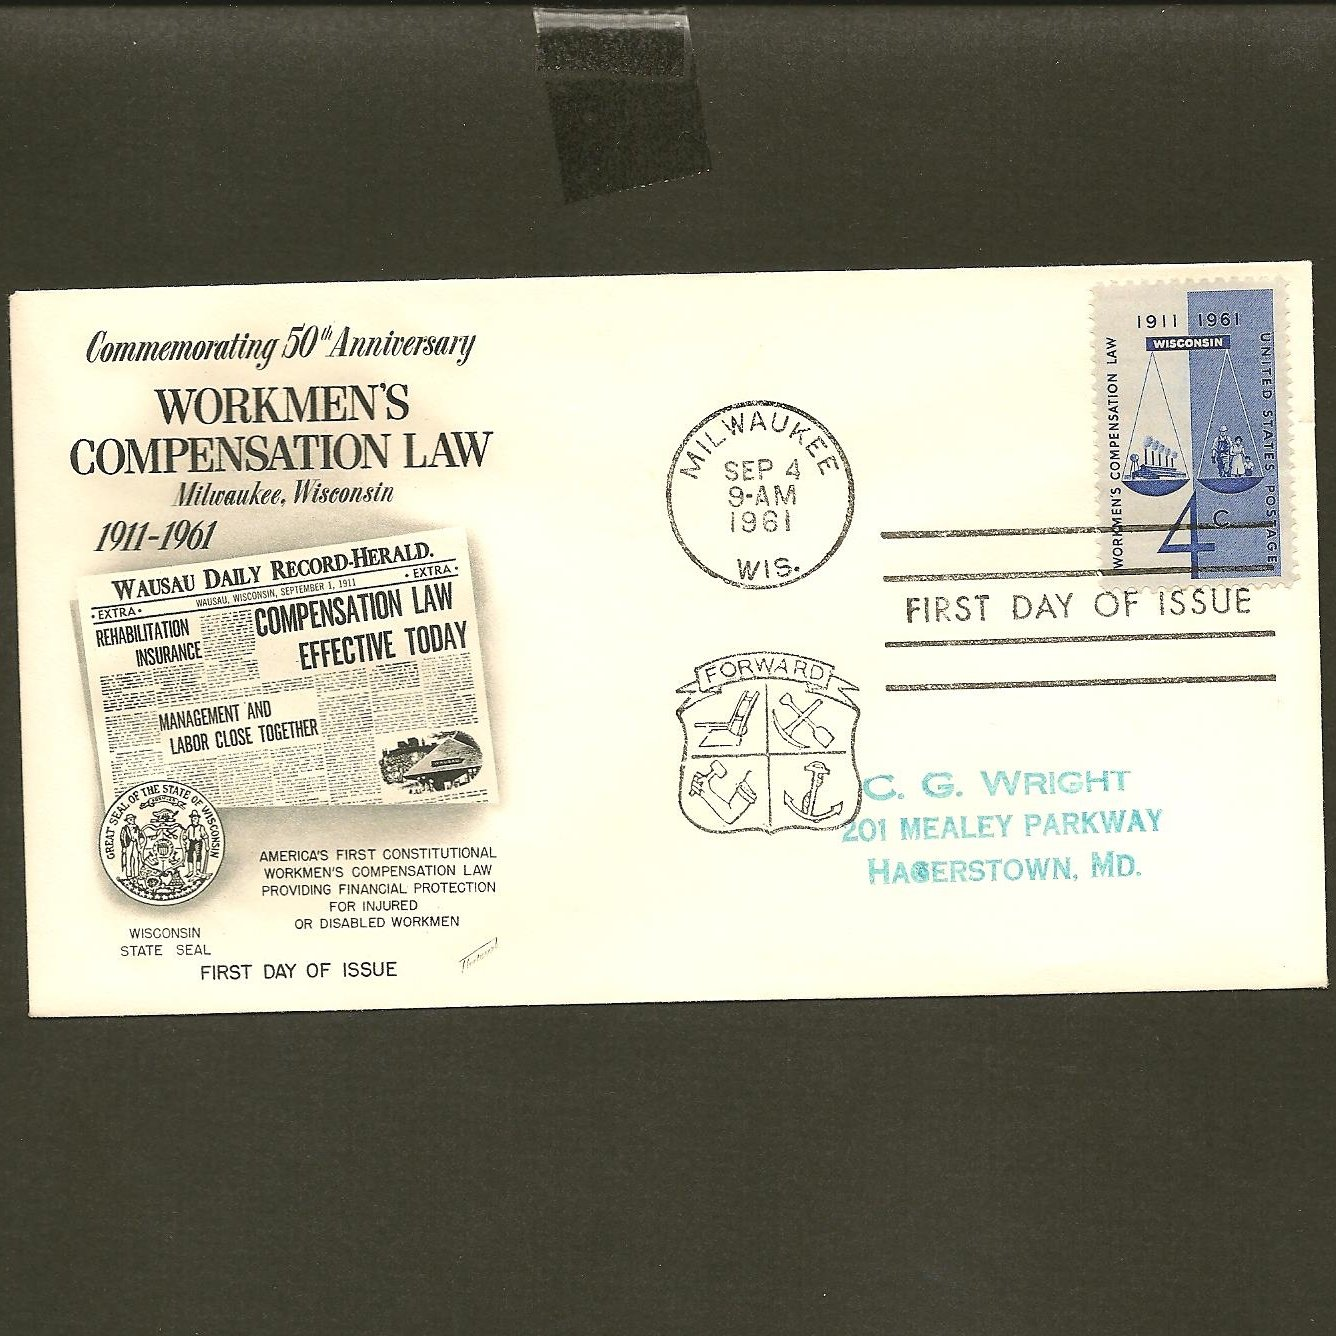 1961 USPS Fleetwood FDC Scott #1186 - Milwaukee, WI - Workmen's Compensation -First Day of Issue